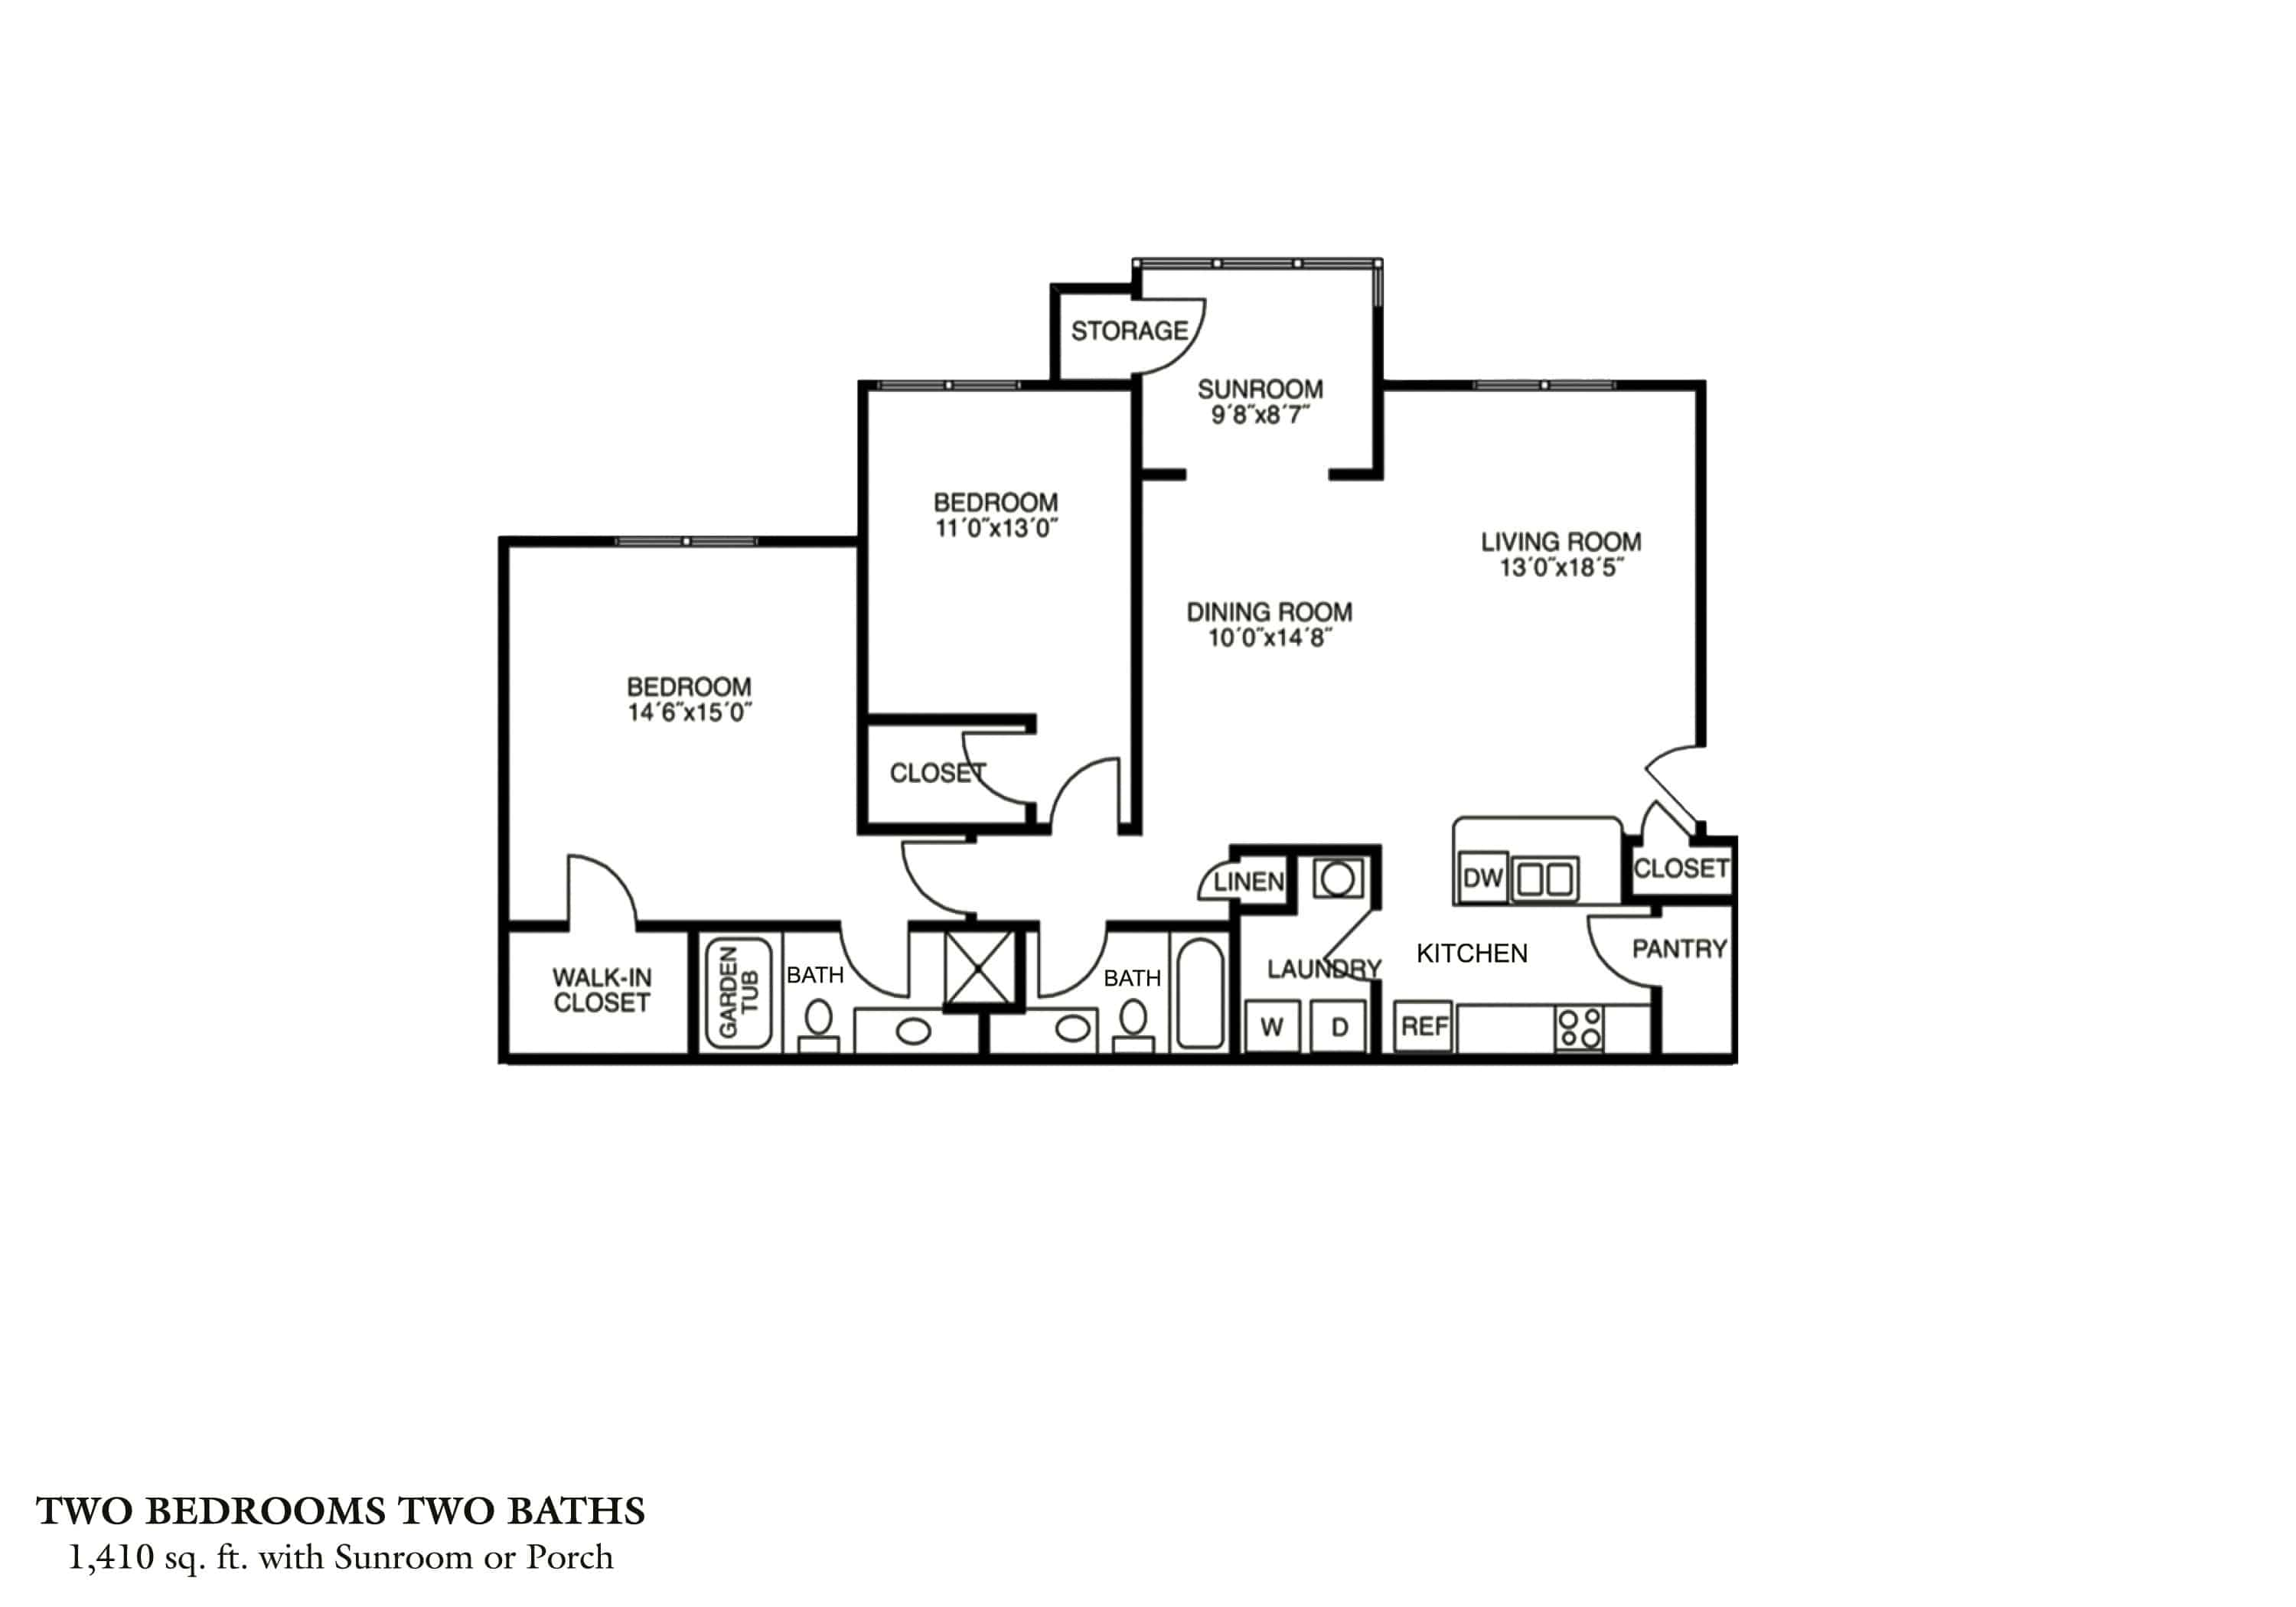 Greystone Properties Columbus, GA Apartments Two Bedroom - Phase I & Phase II Approx. 1,410 sq. ft. Beds 2 Baths 2